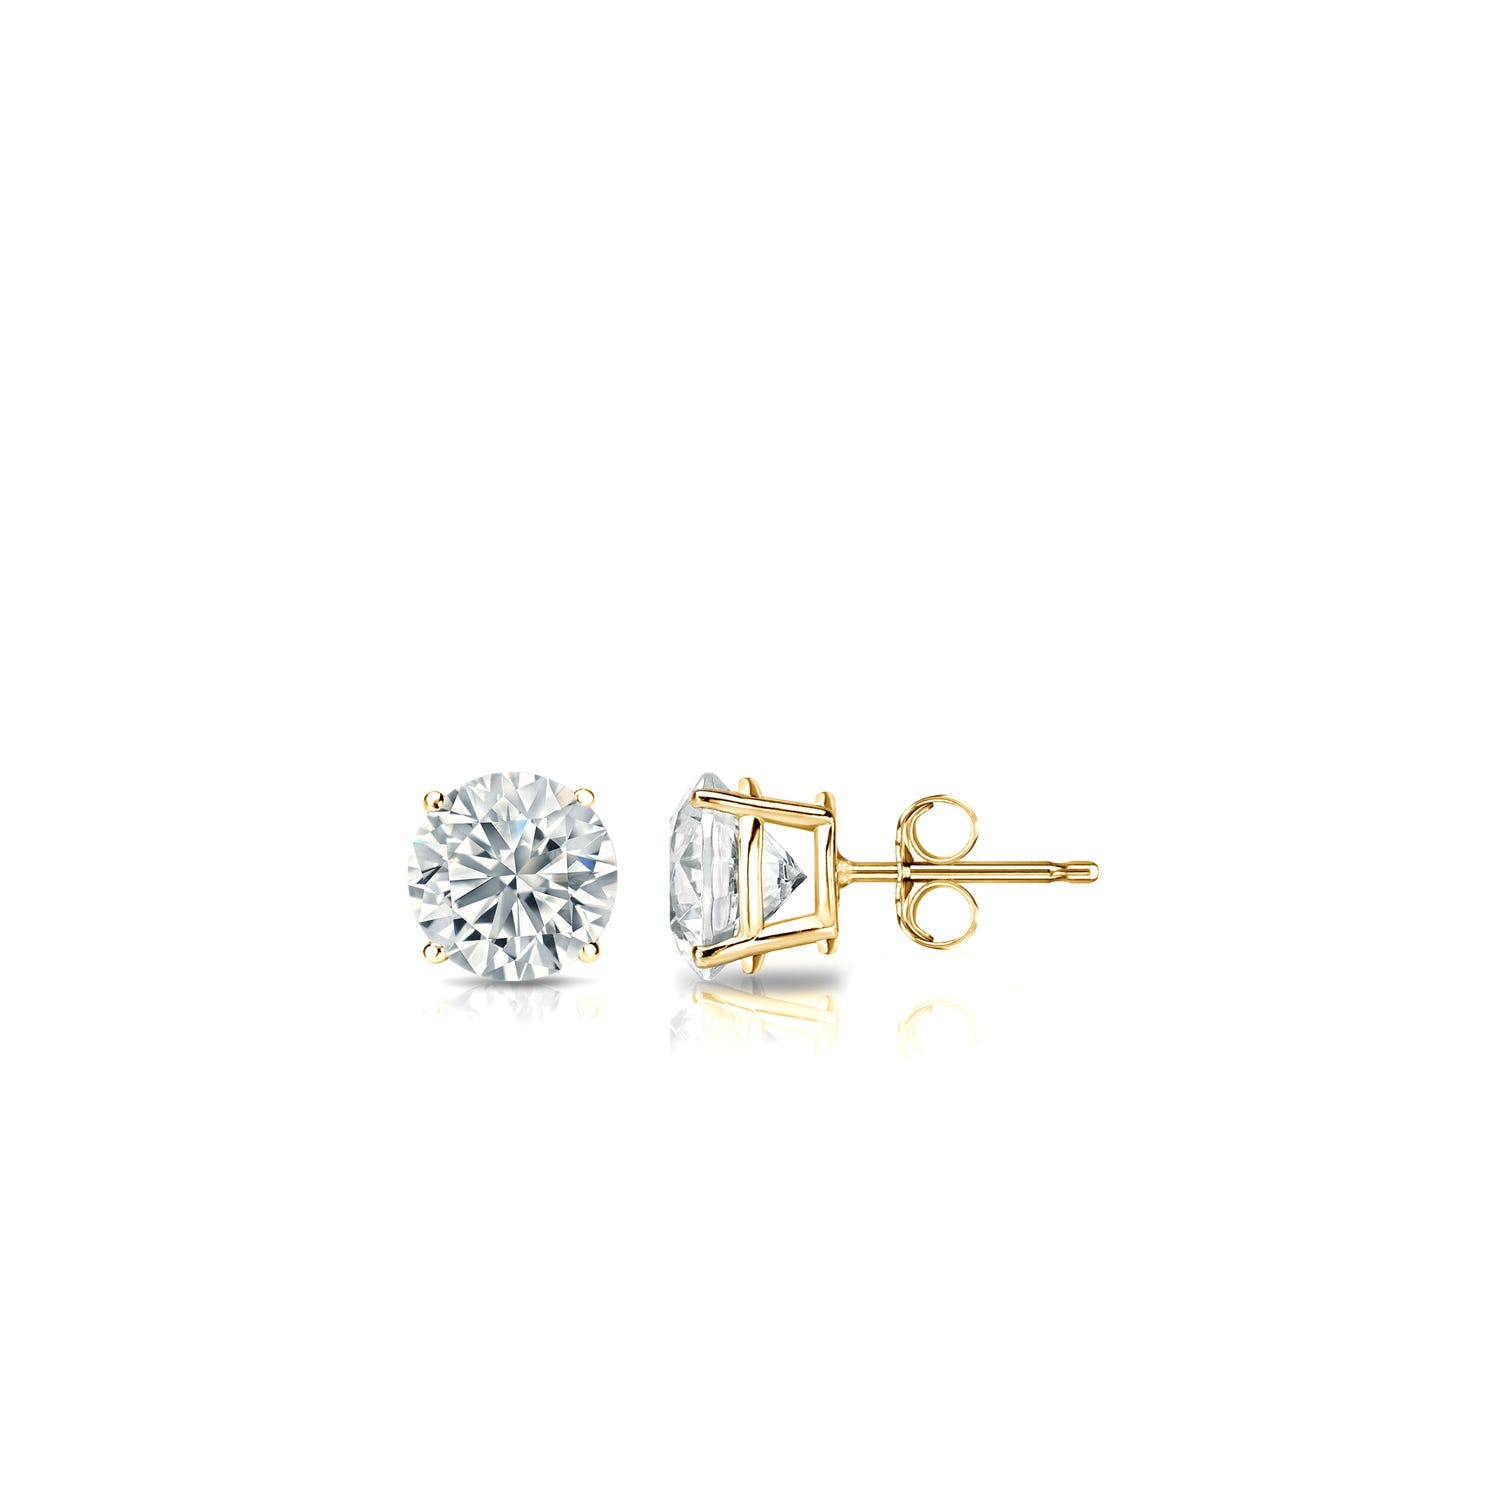 Diamond 1/6ctw. Round Solitaire Stud Earrings (I-J, I1) 18k Yellow Gold